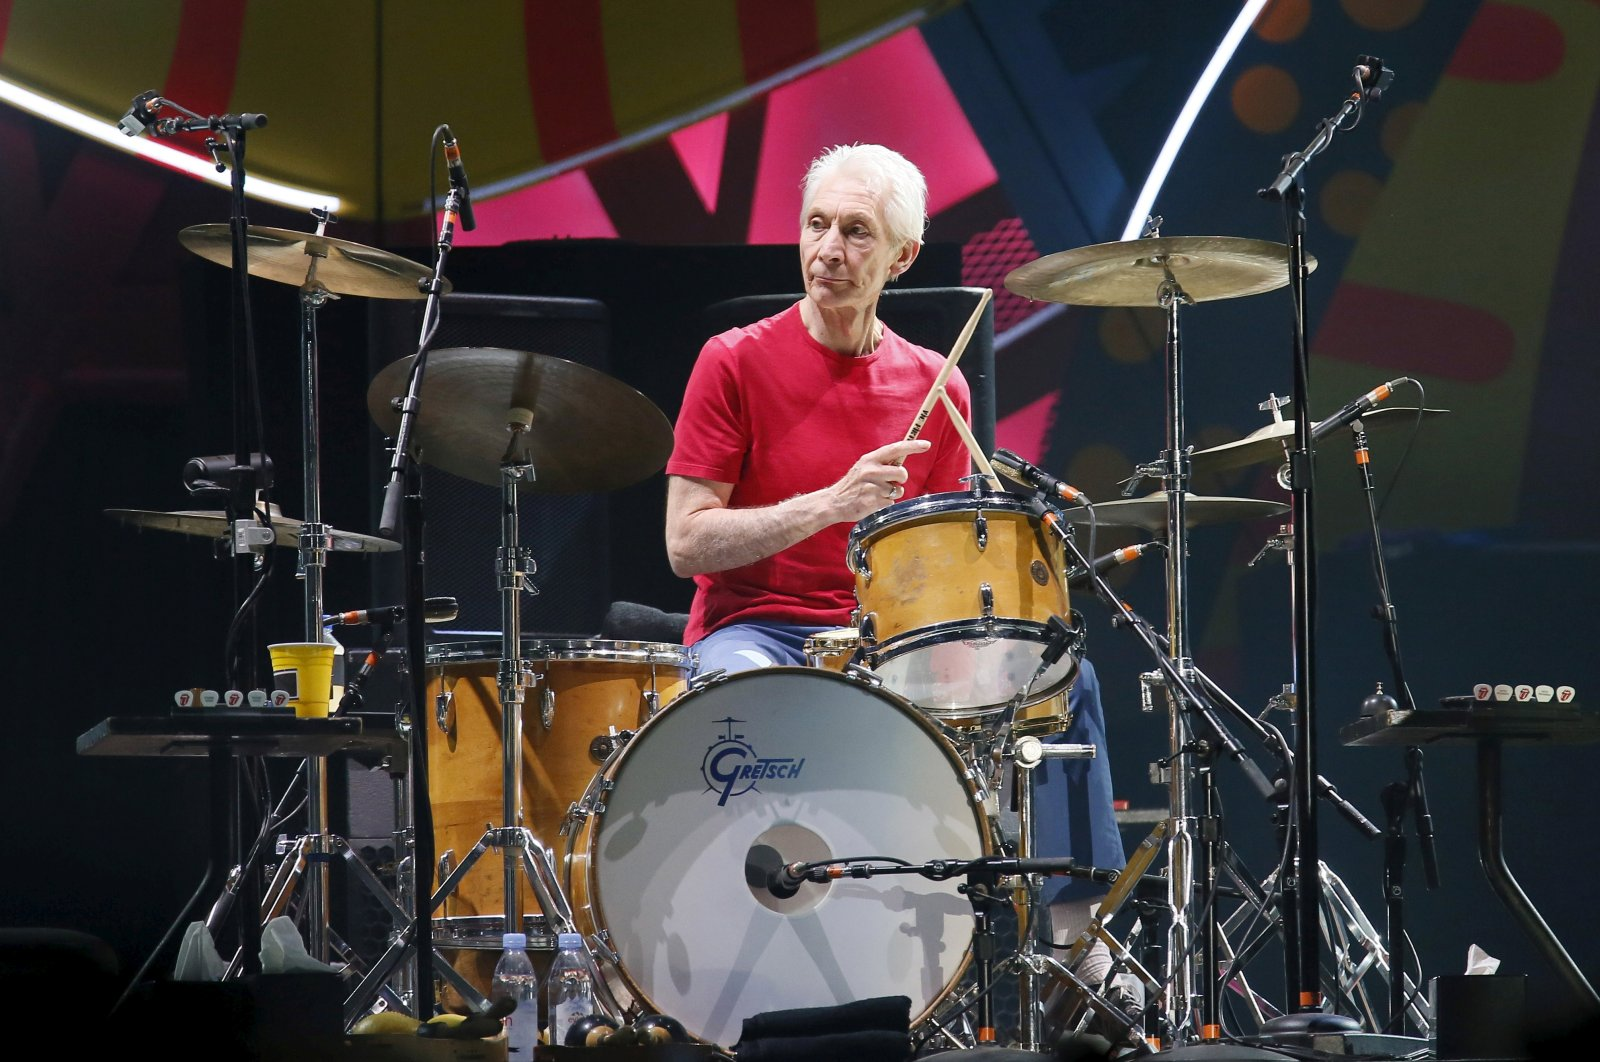 """Charlie Watts, the drummer of British veteran rockers The Rolling Stones, performs with his band members Mick Jagger, Keith Richards, and Ronnie Wood during a concert on their """"Latin America Ole Tour"""" in Santiago, Chile, Feb. 3, 2016. (Reuters Photo)"""